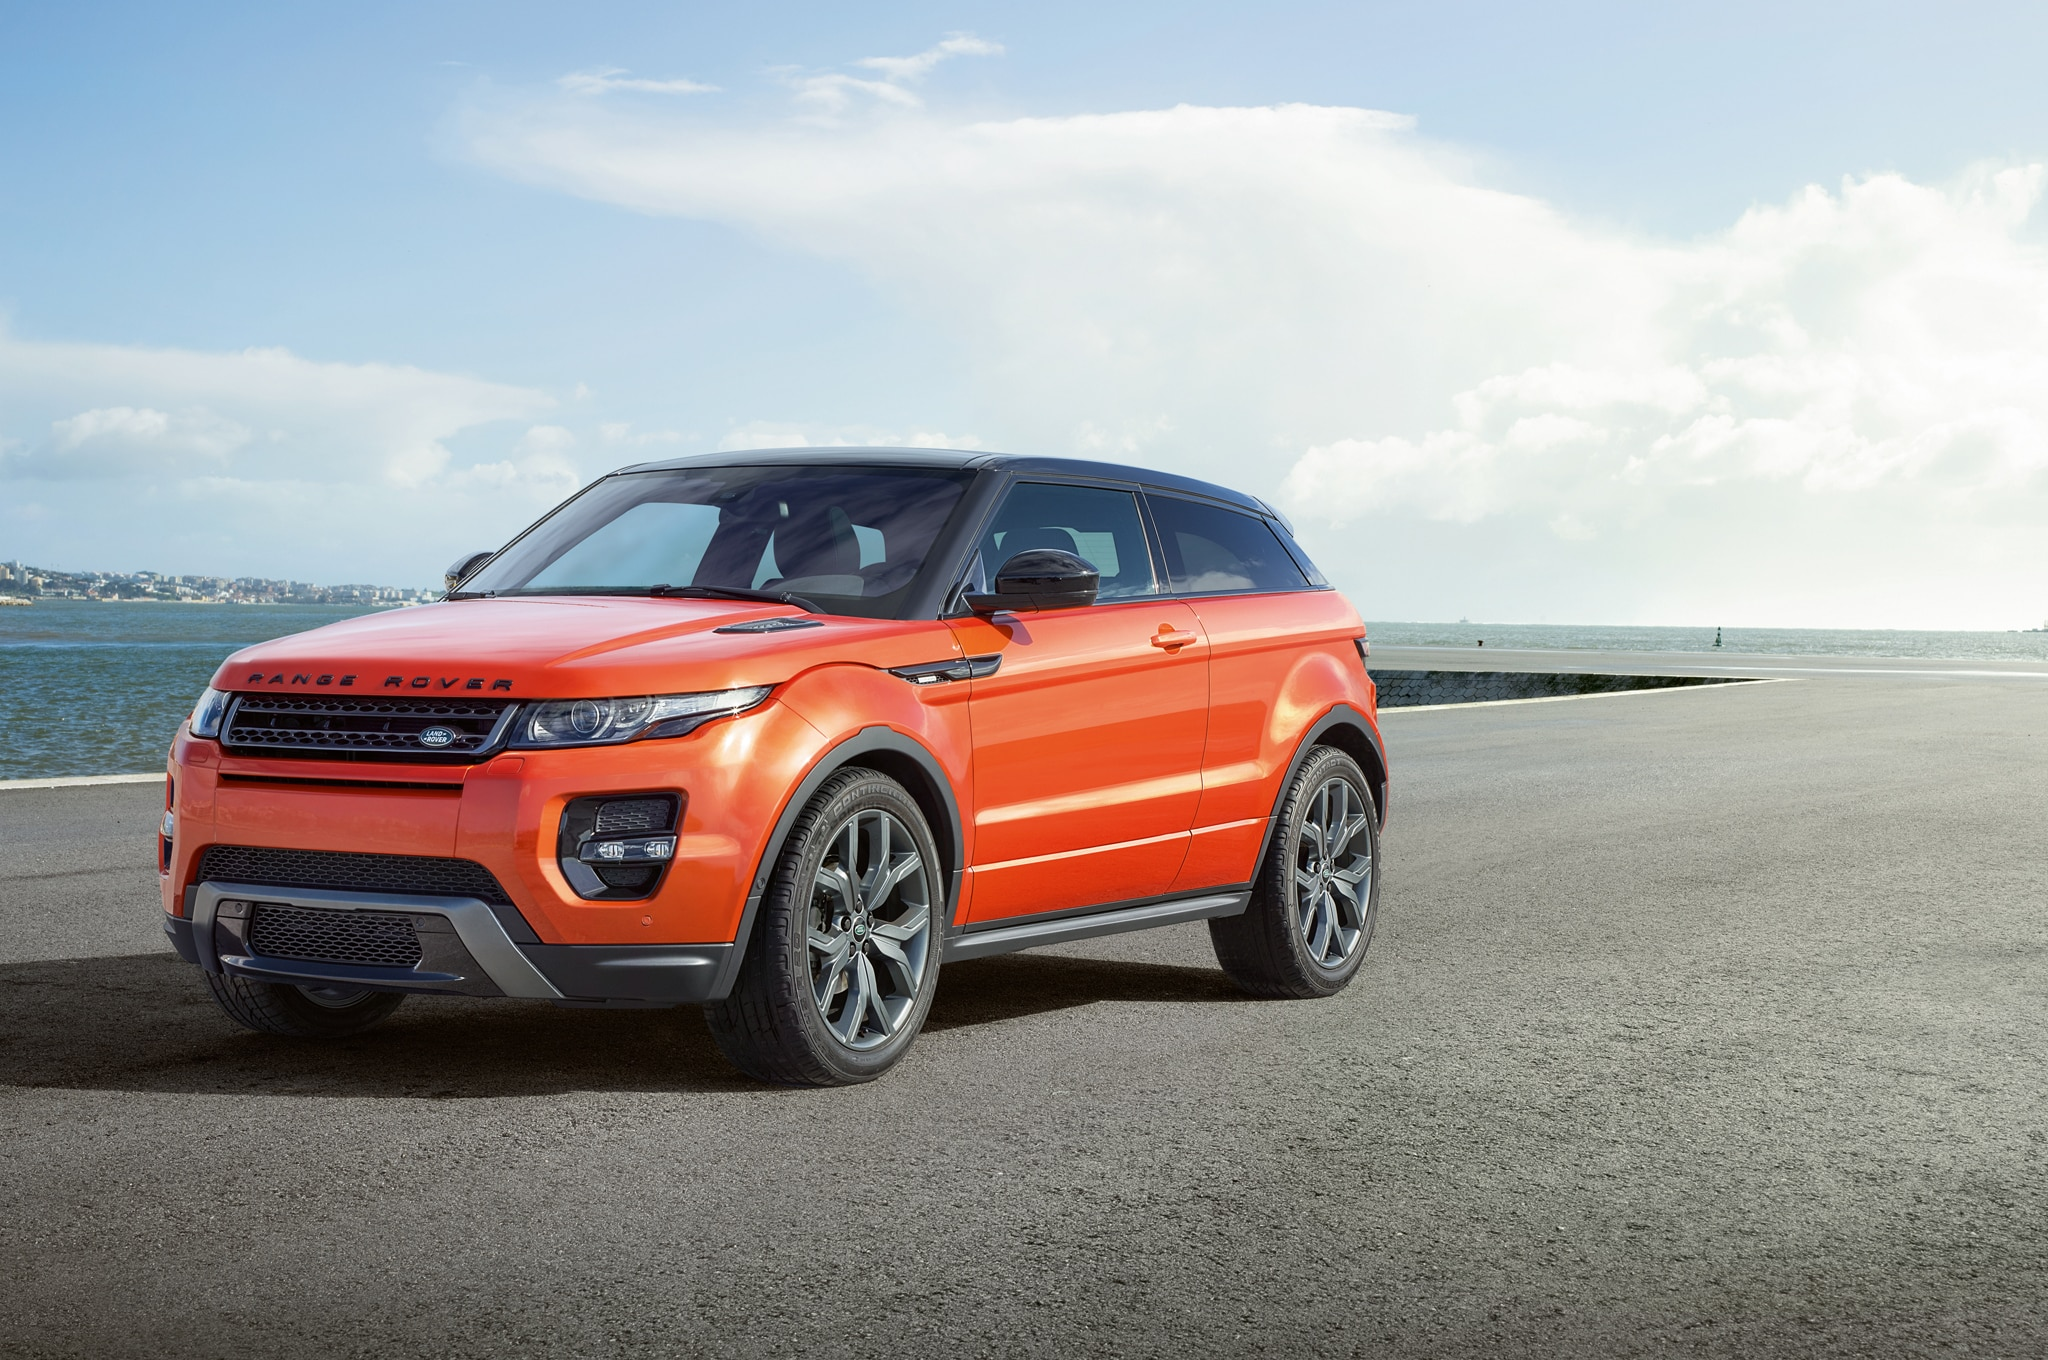 2015 Land Rover Range Rover Evoque Autobiography Dynamic Debuts at ...